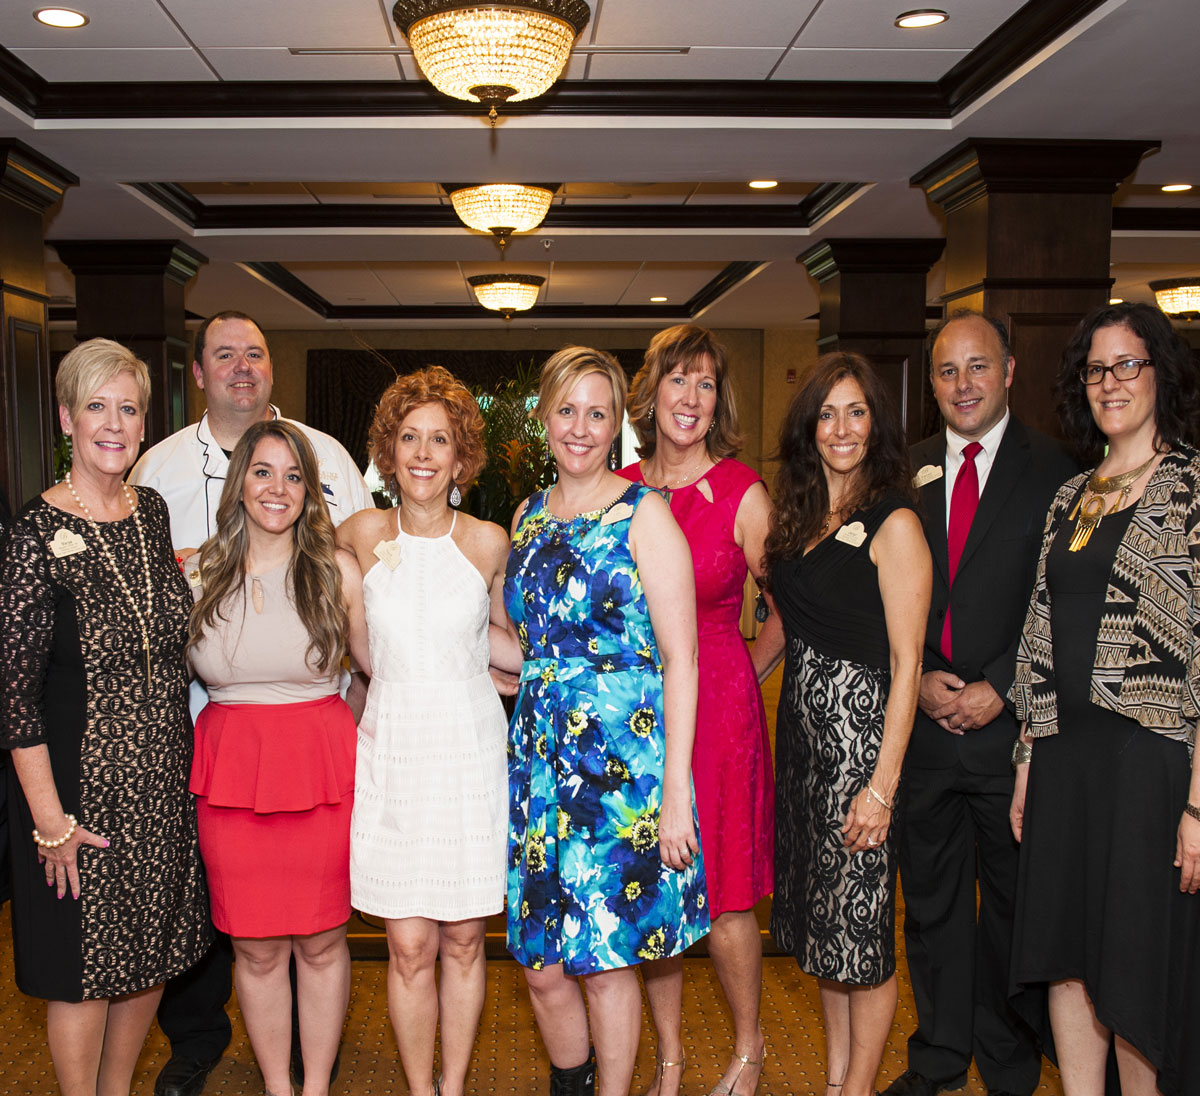 Brandywine living team photo at event